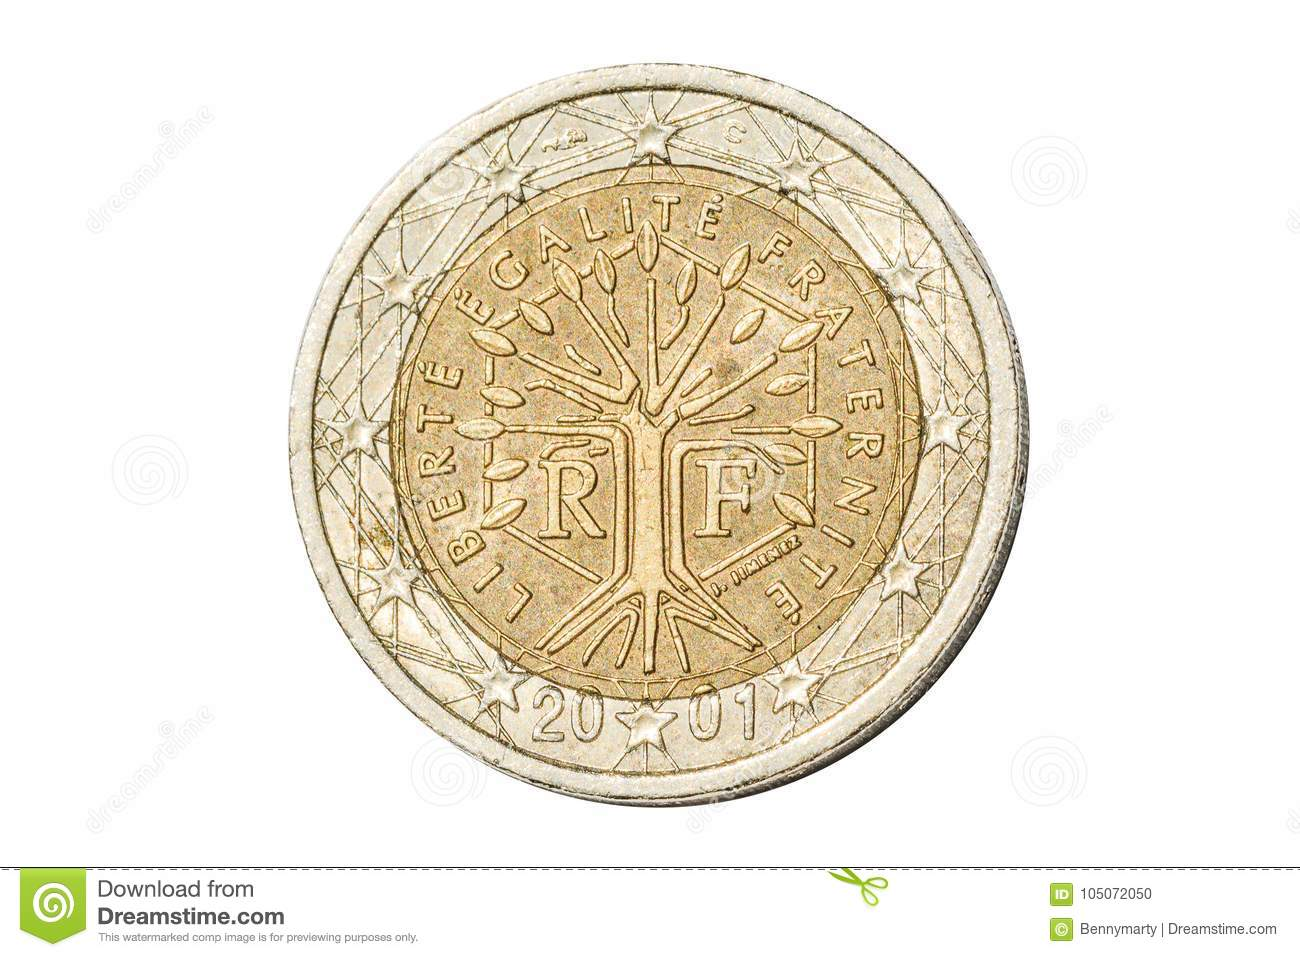 Symbol of france currency gallery symbol and sign ideas france two euro coin stock photo image of isolated 105072050 royalty free stock photo buycottarizona biocorpaavc